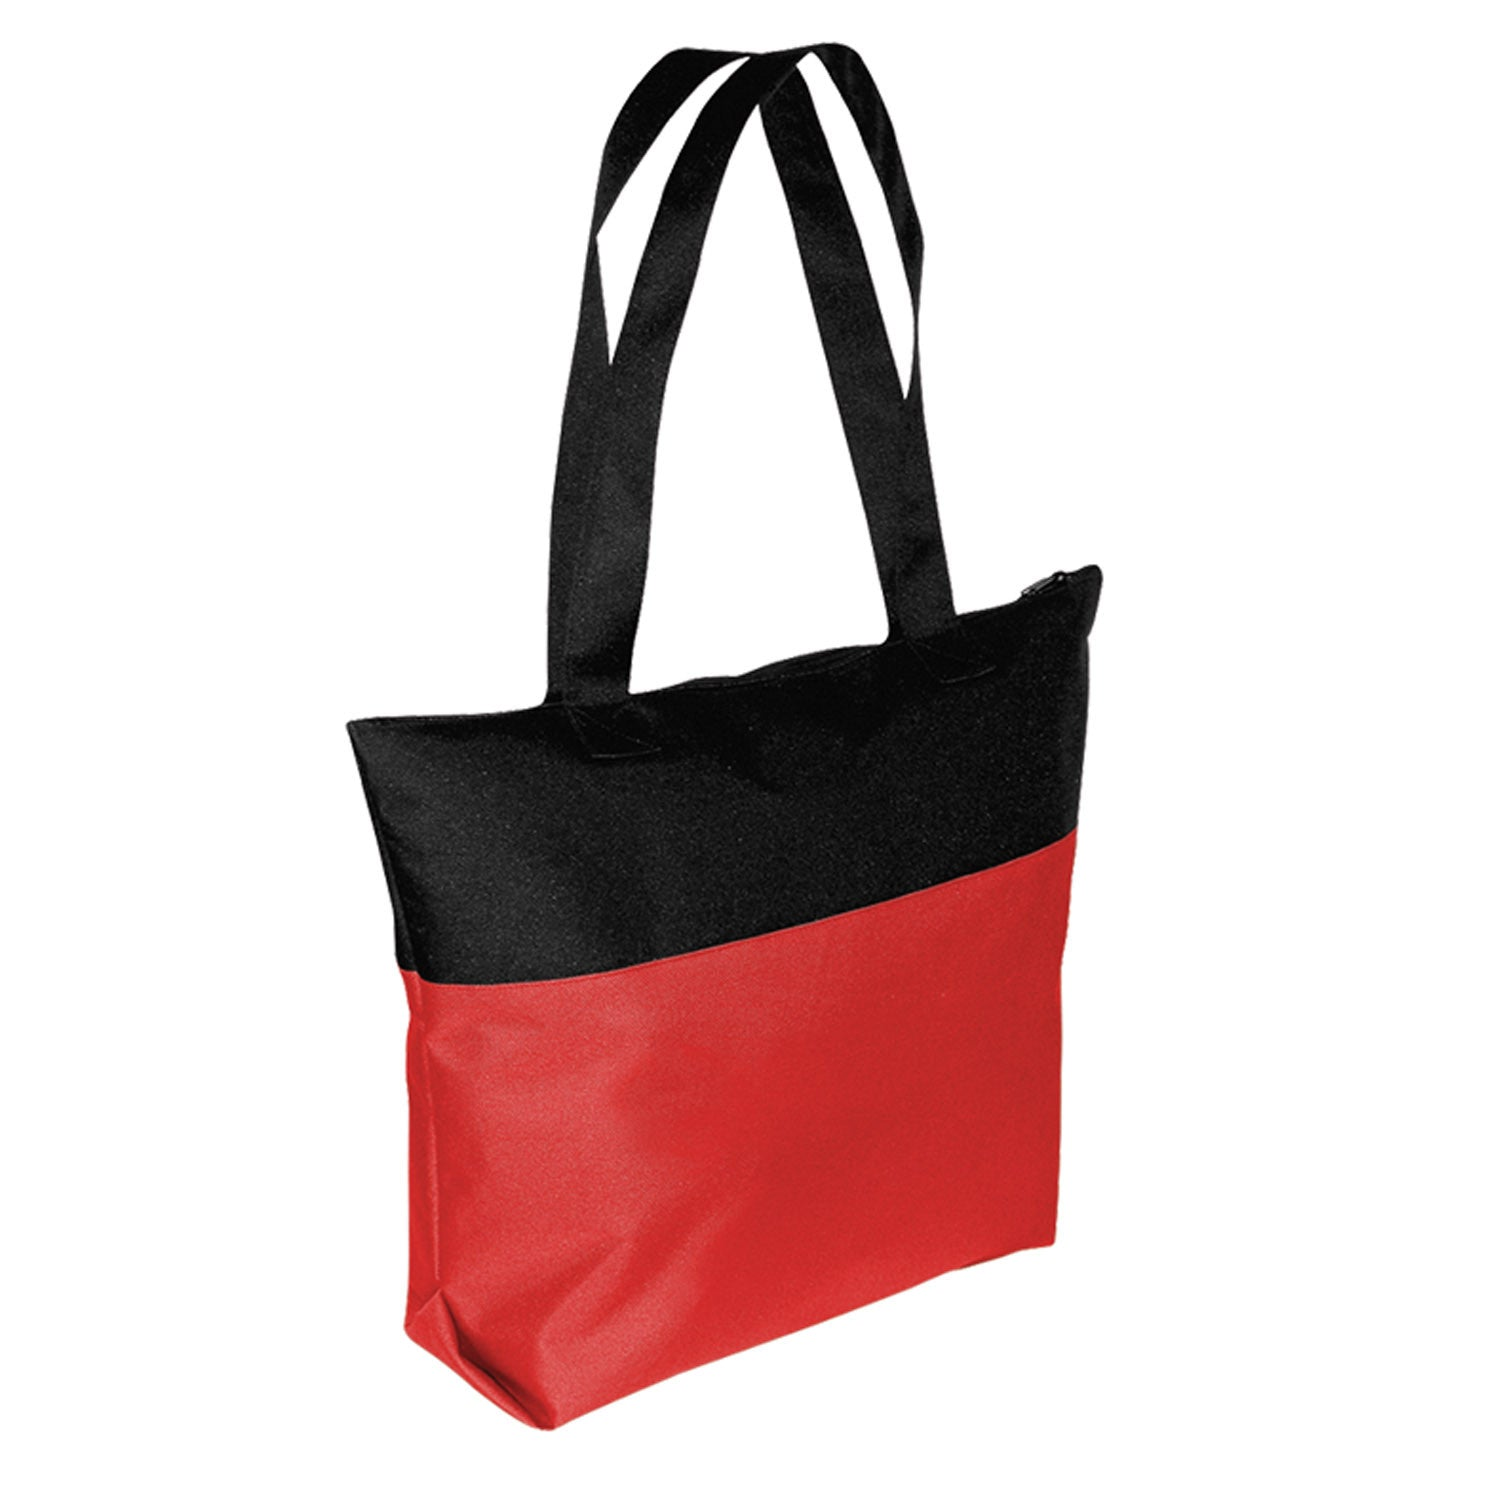 Two Tone Tote Bag with Zip Closure - 4 Colors